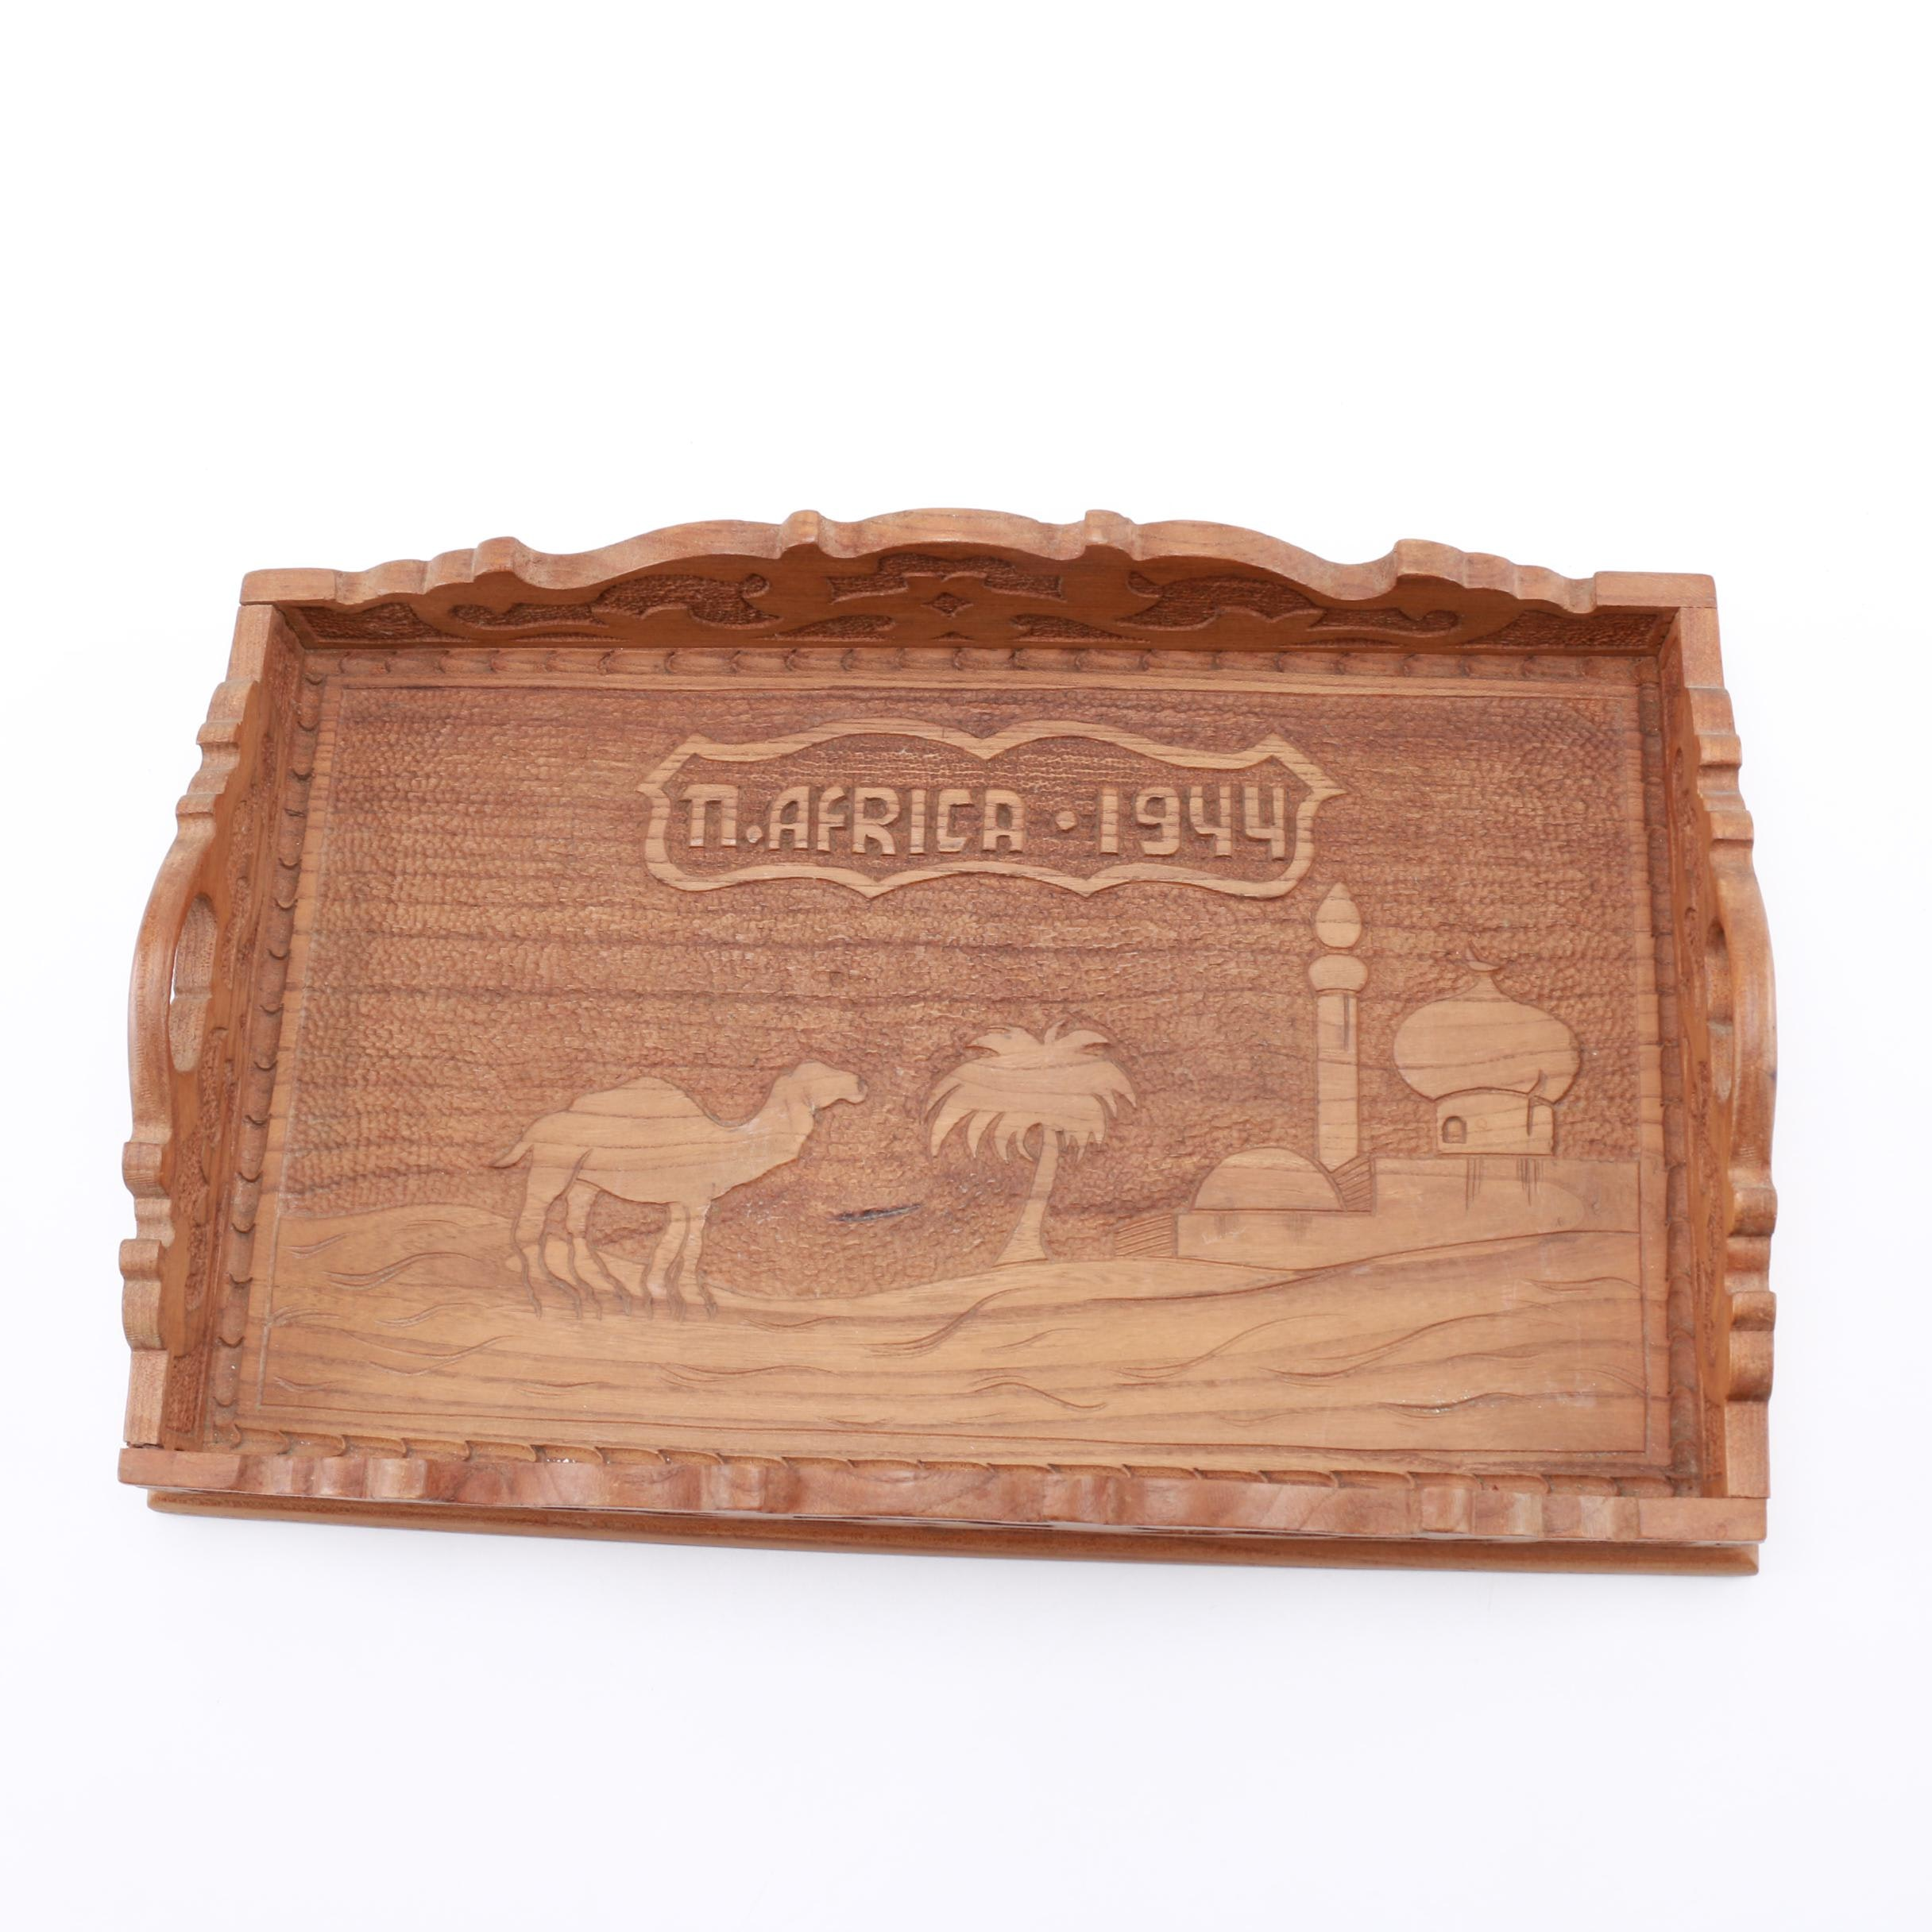 Carved Wooden North African Motif Tray